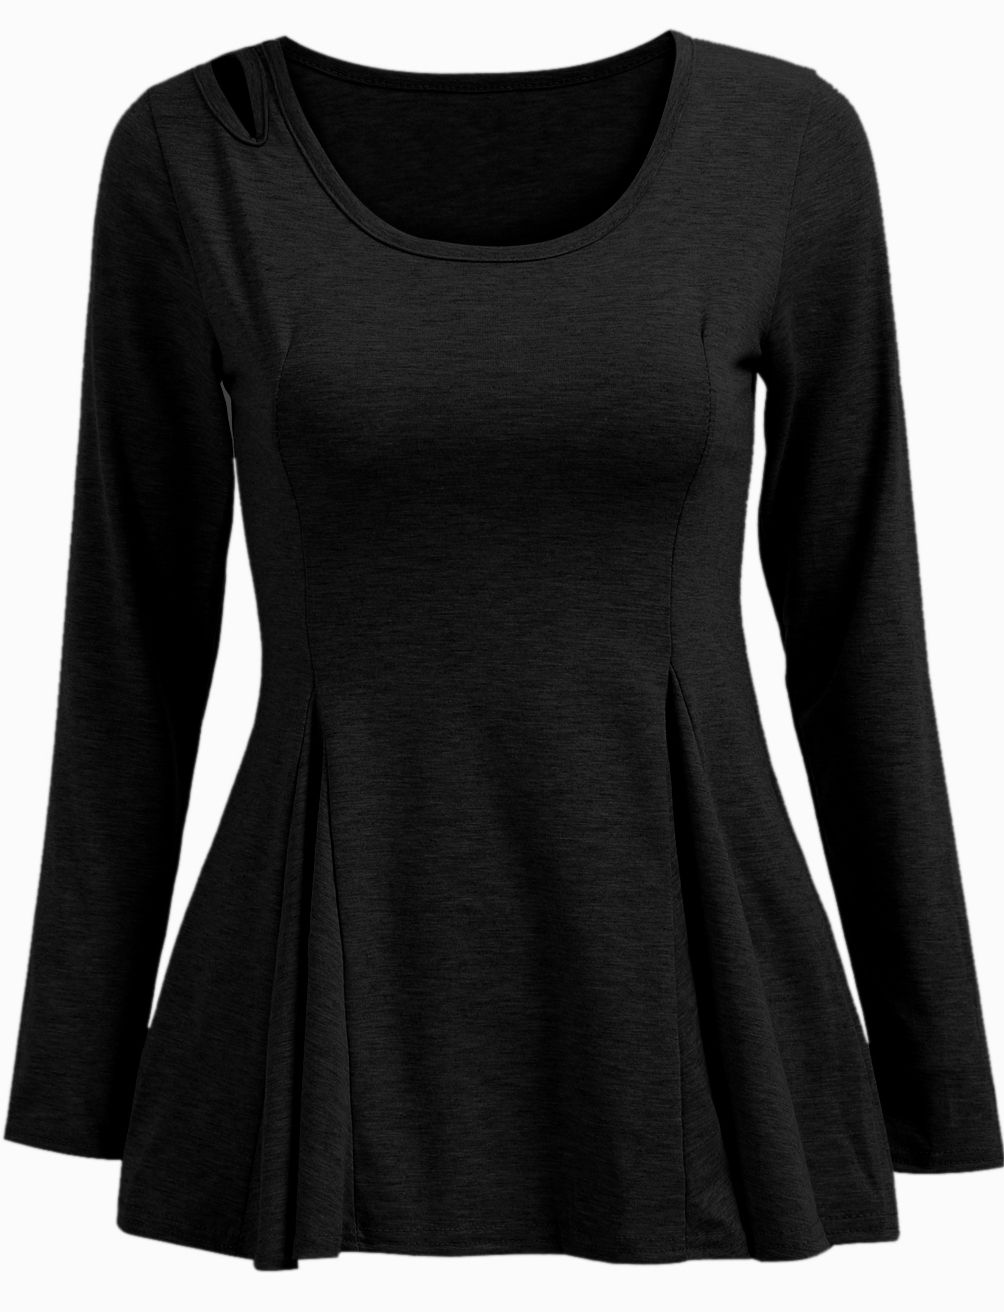 Black long sleeve hollow ruffle top clothes and other random crap